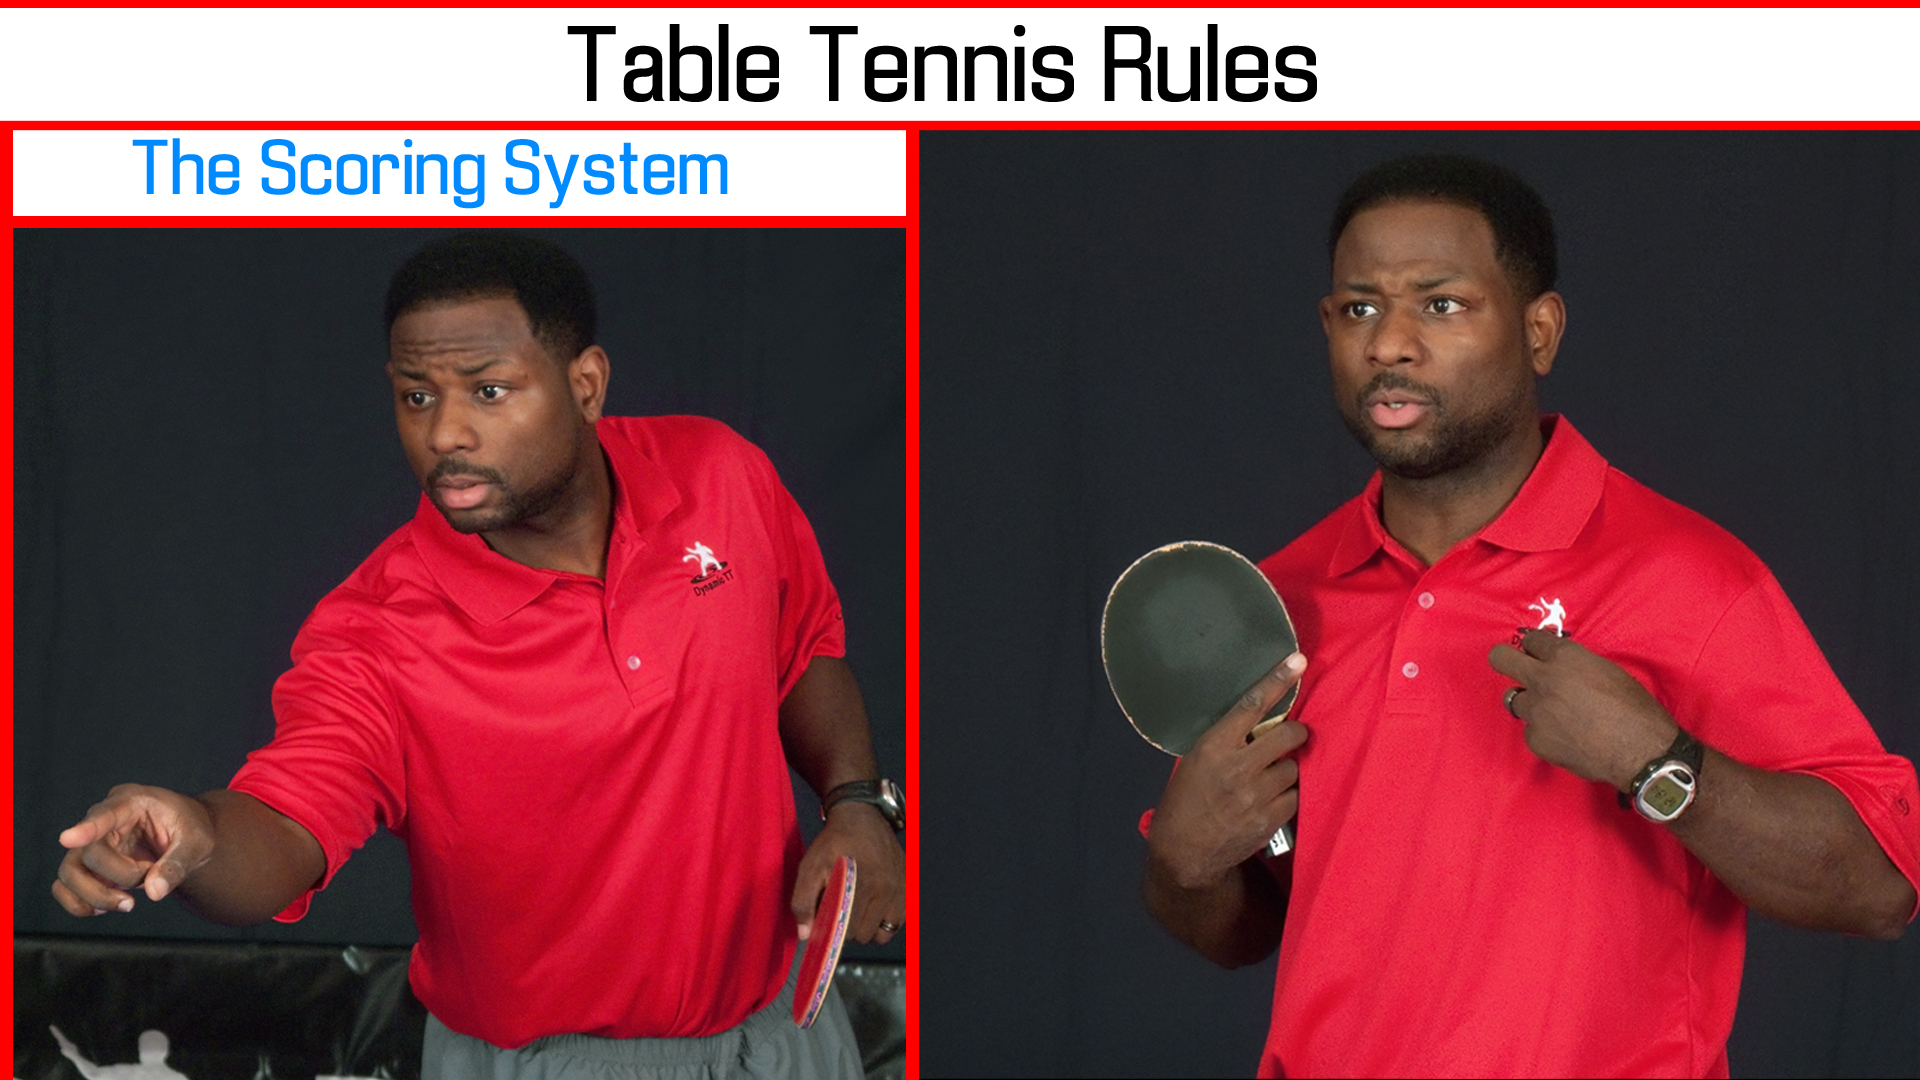 Table Tennis Rules – The Scoring System